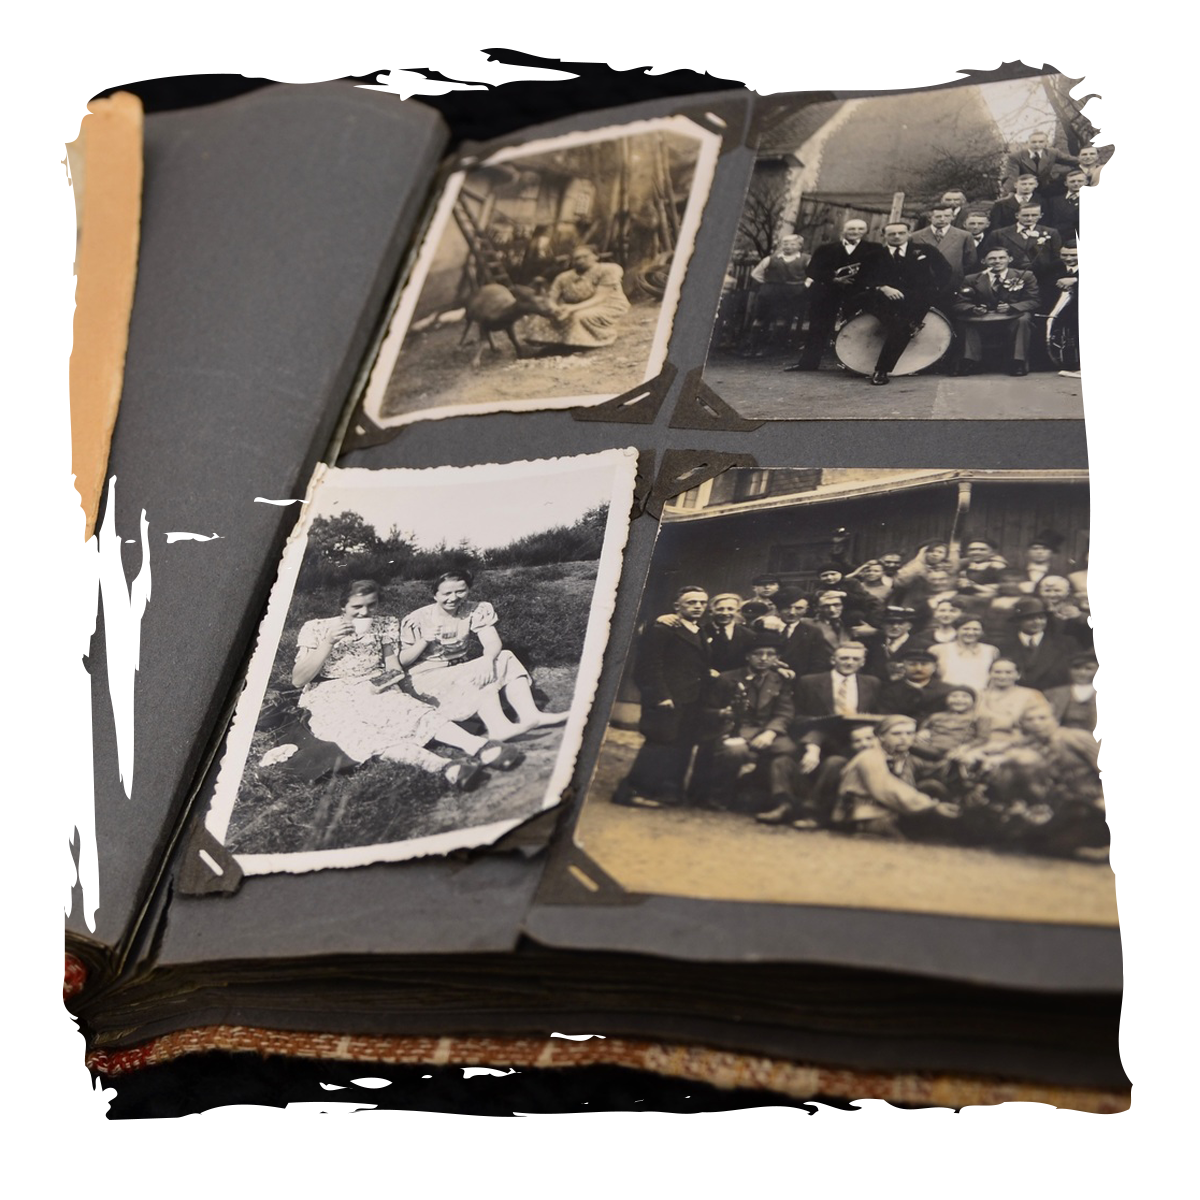 Podcast to Narrate A Photo Album